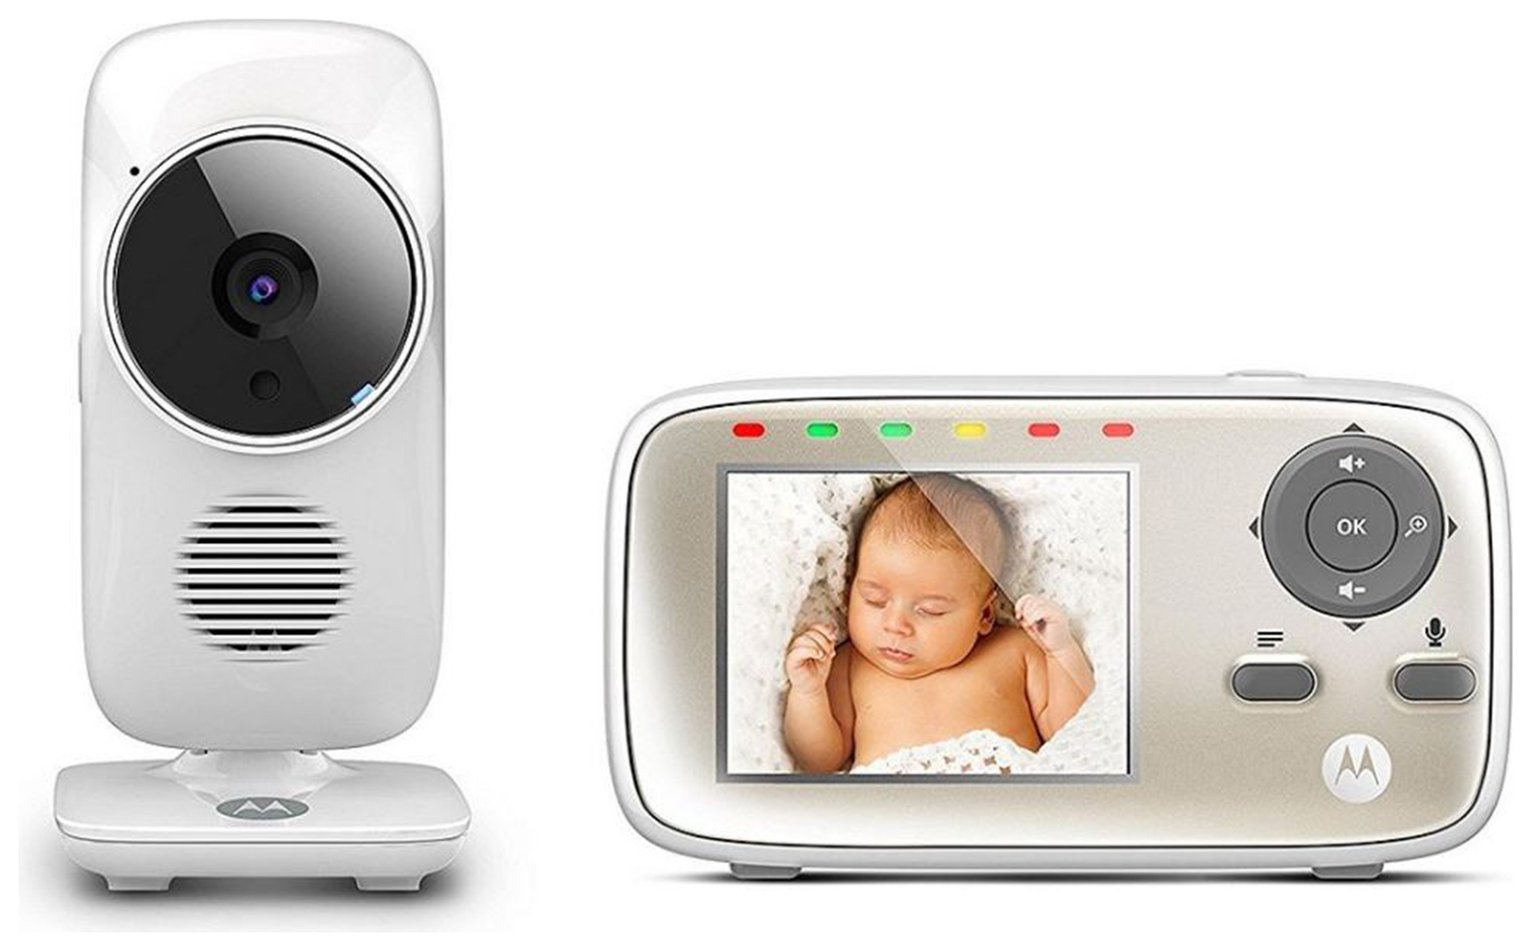 Motorola MBP483 Video Baby Monitor